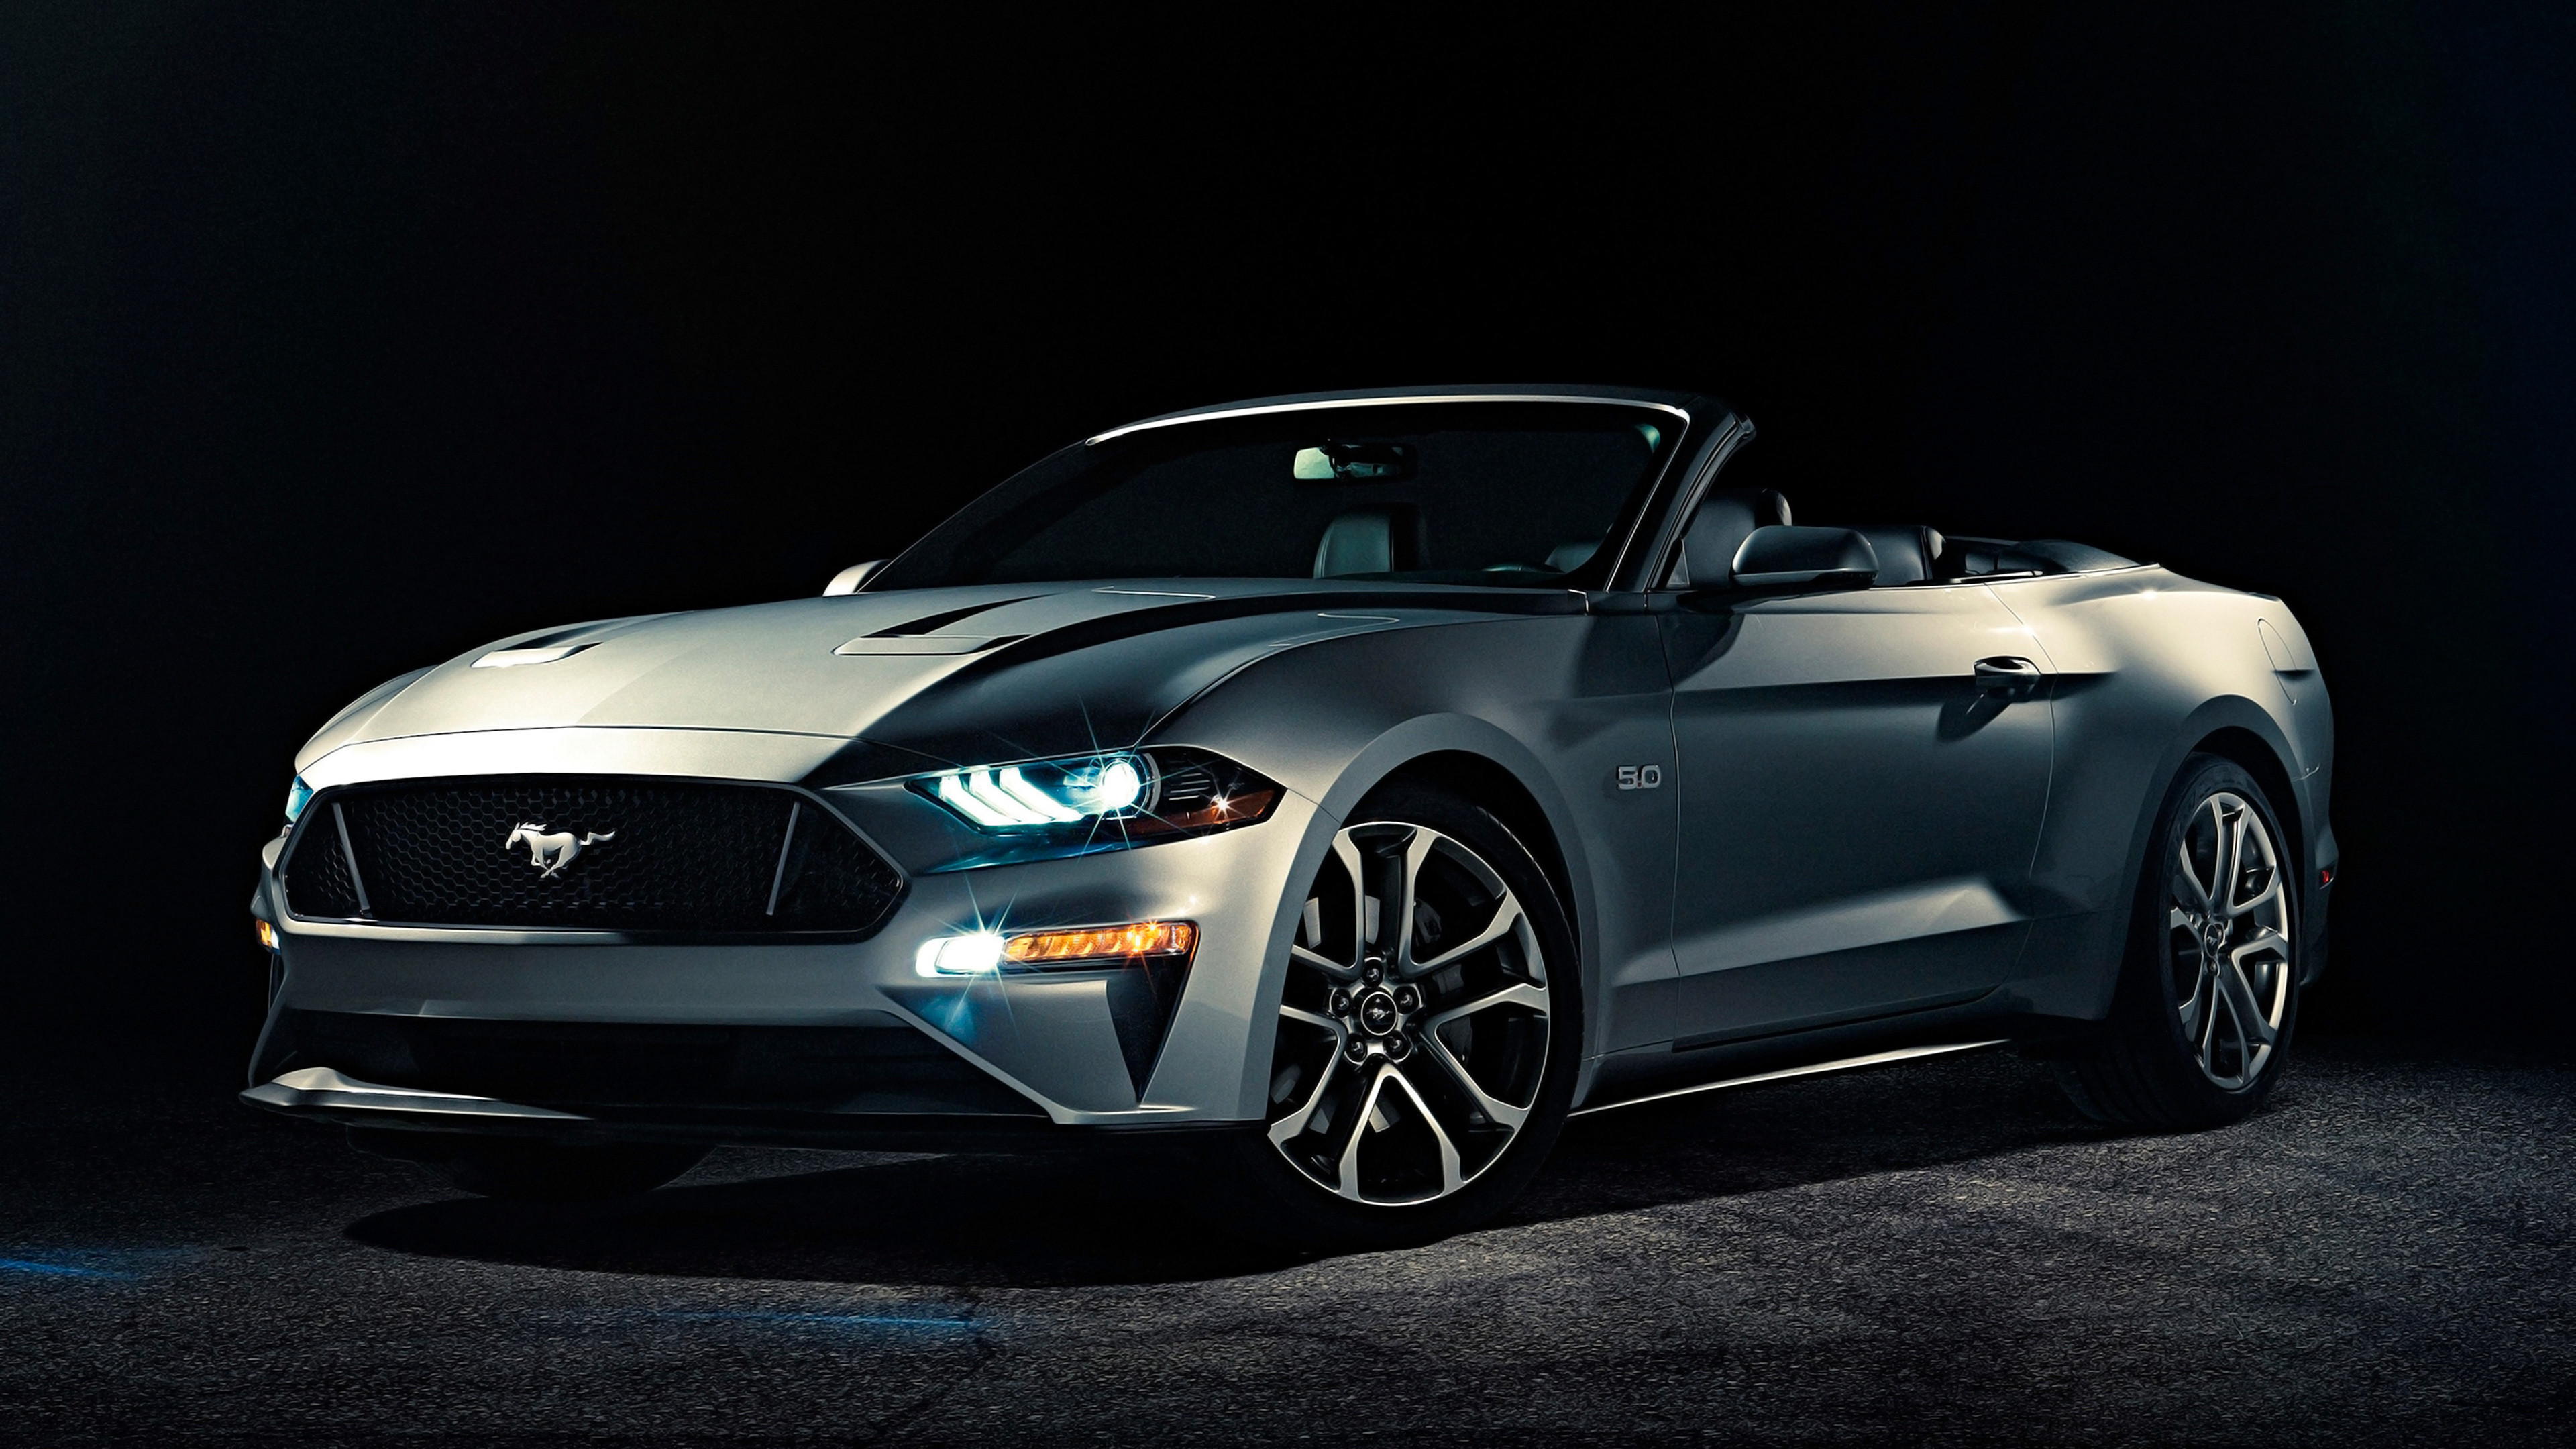 Res: 3840x2160, Tags: Convertible Ford Mustang 2018